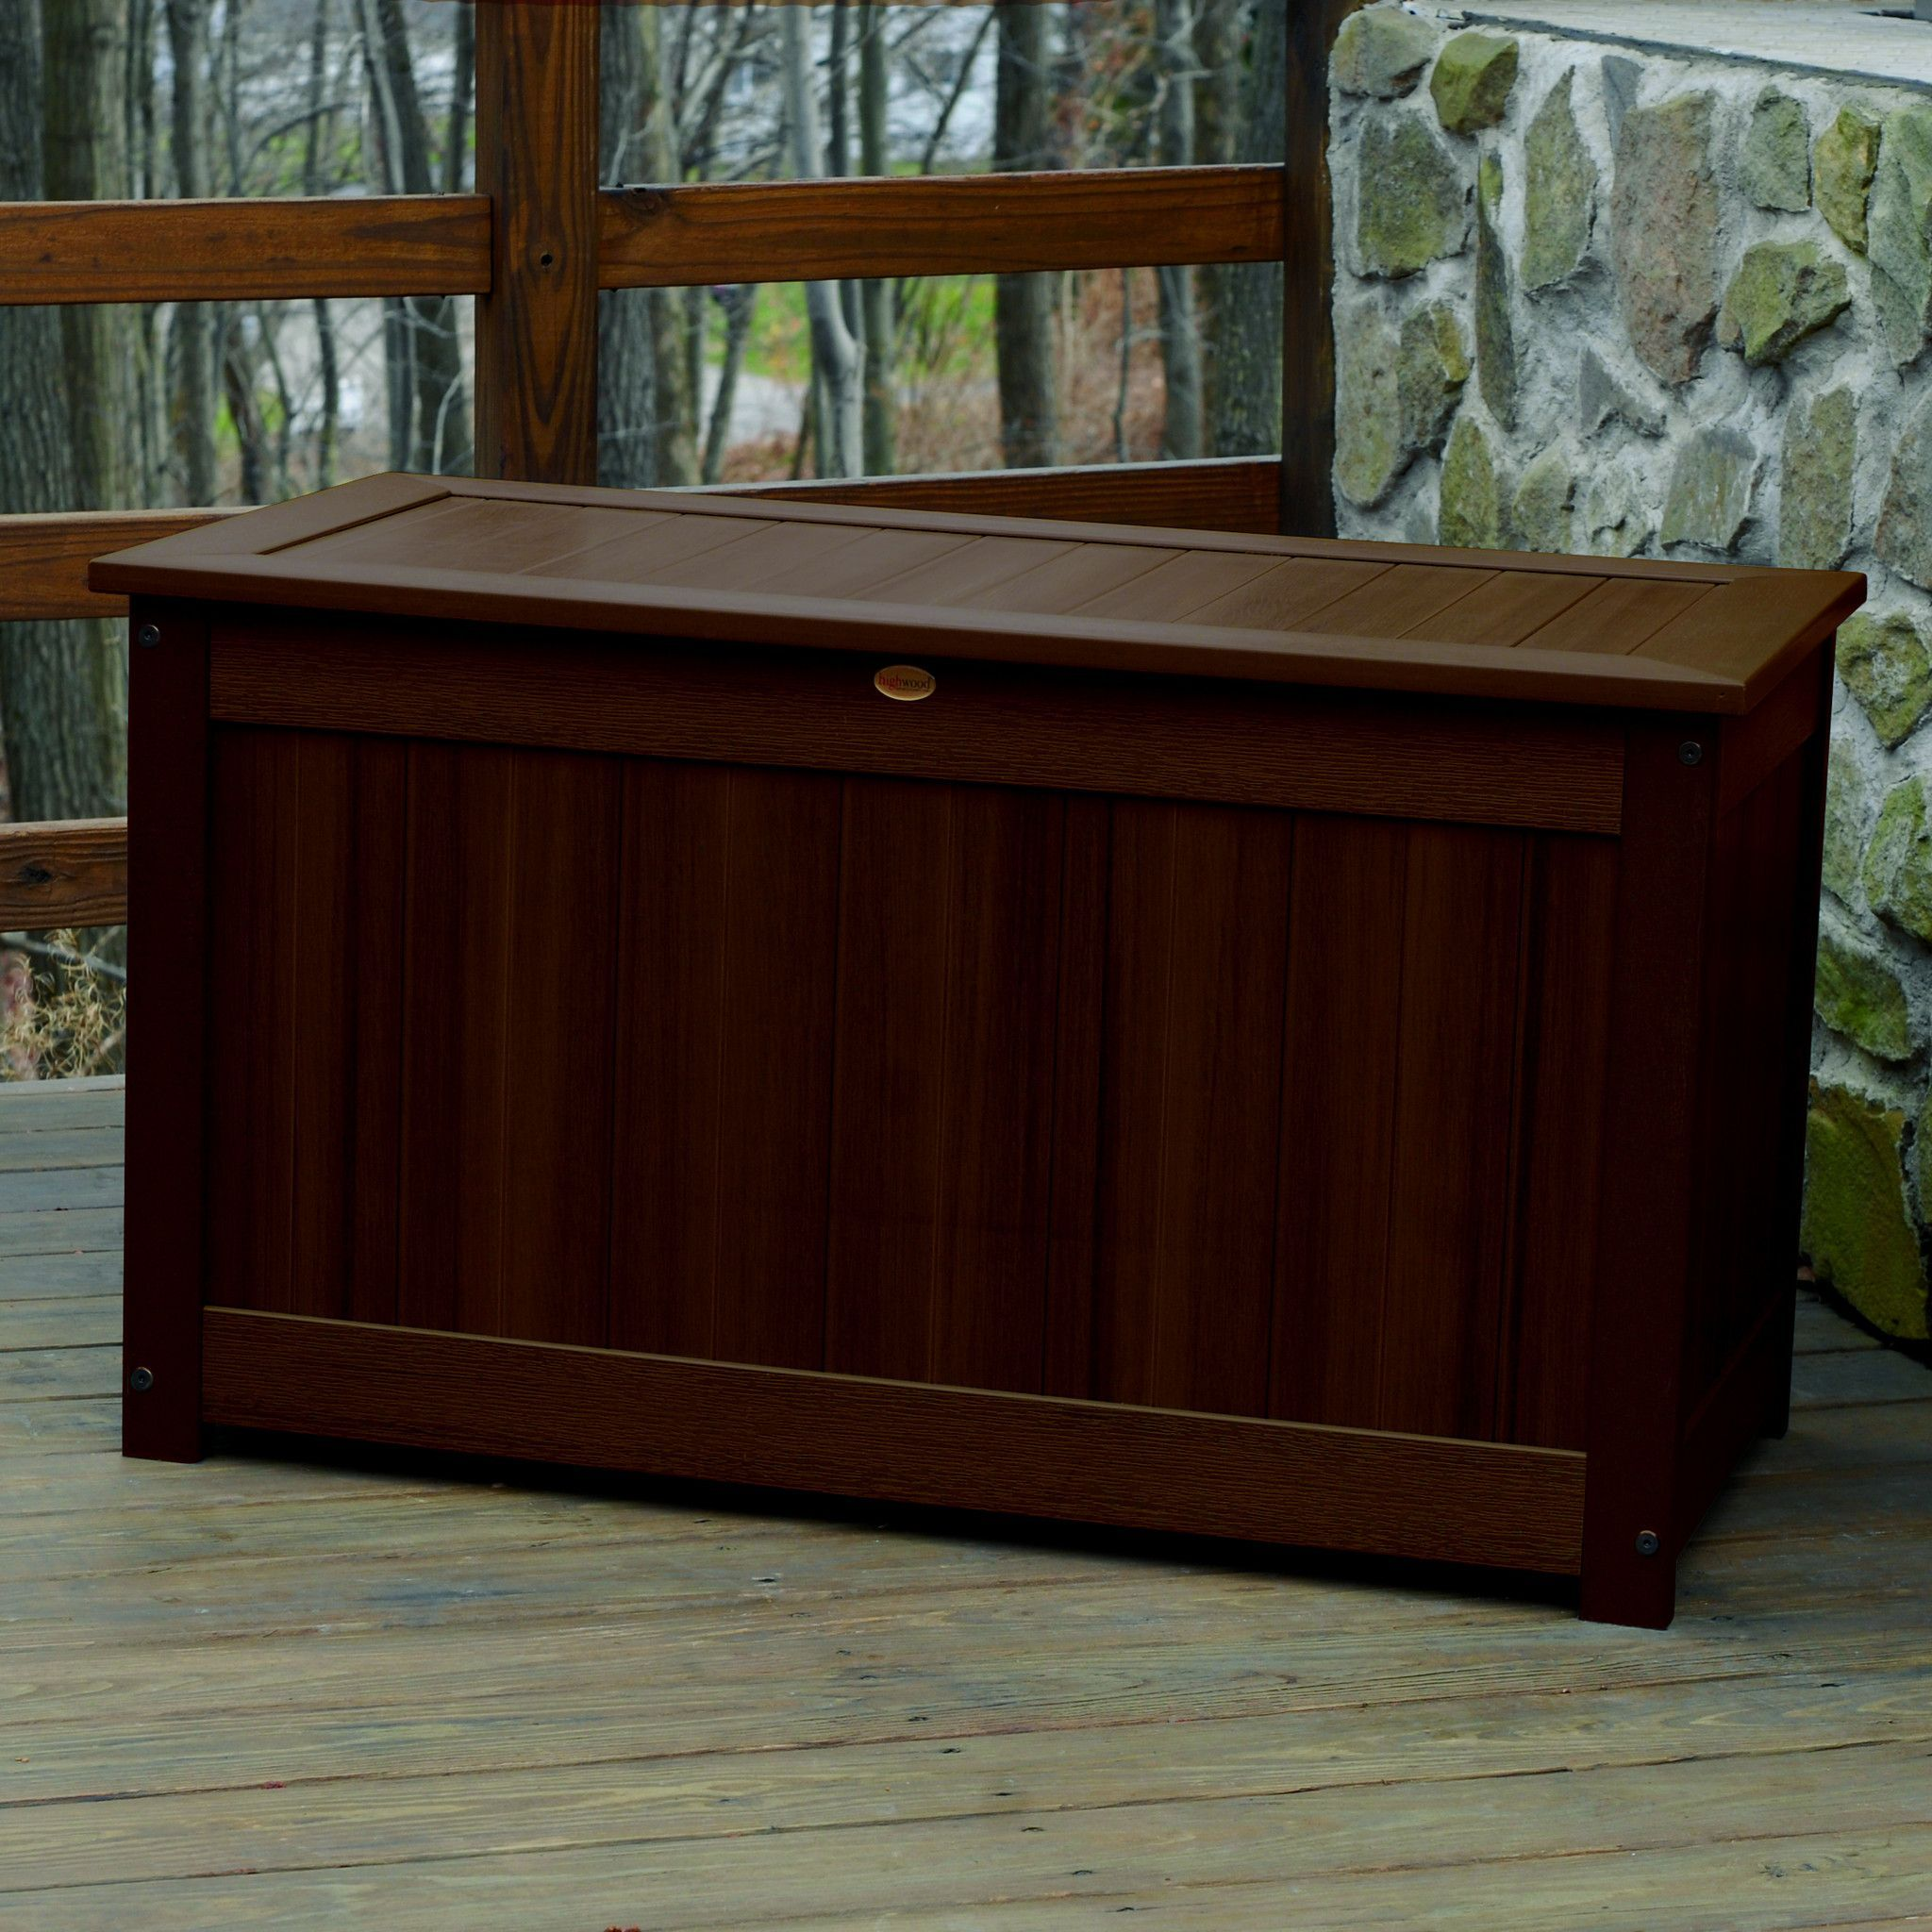 Highwood synthetic wood Deck Patio Storage Box